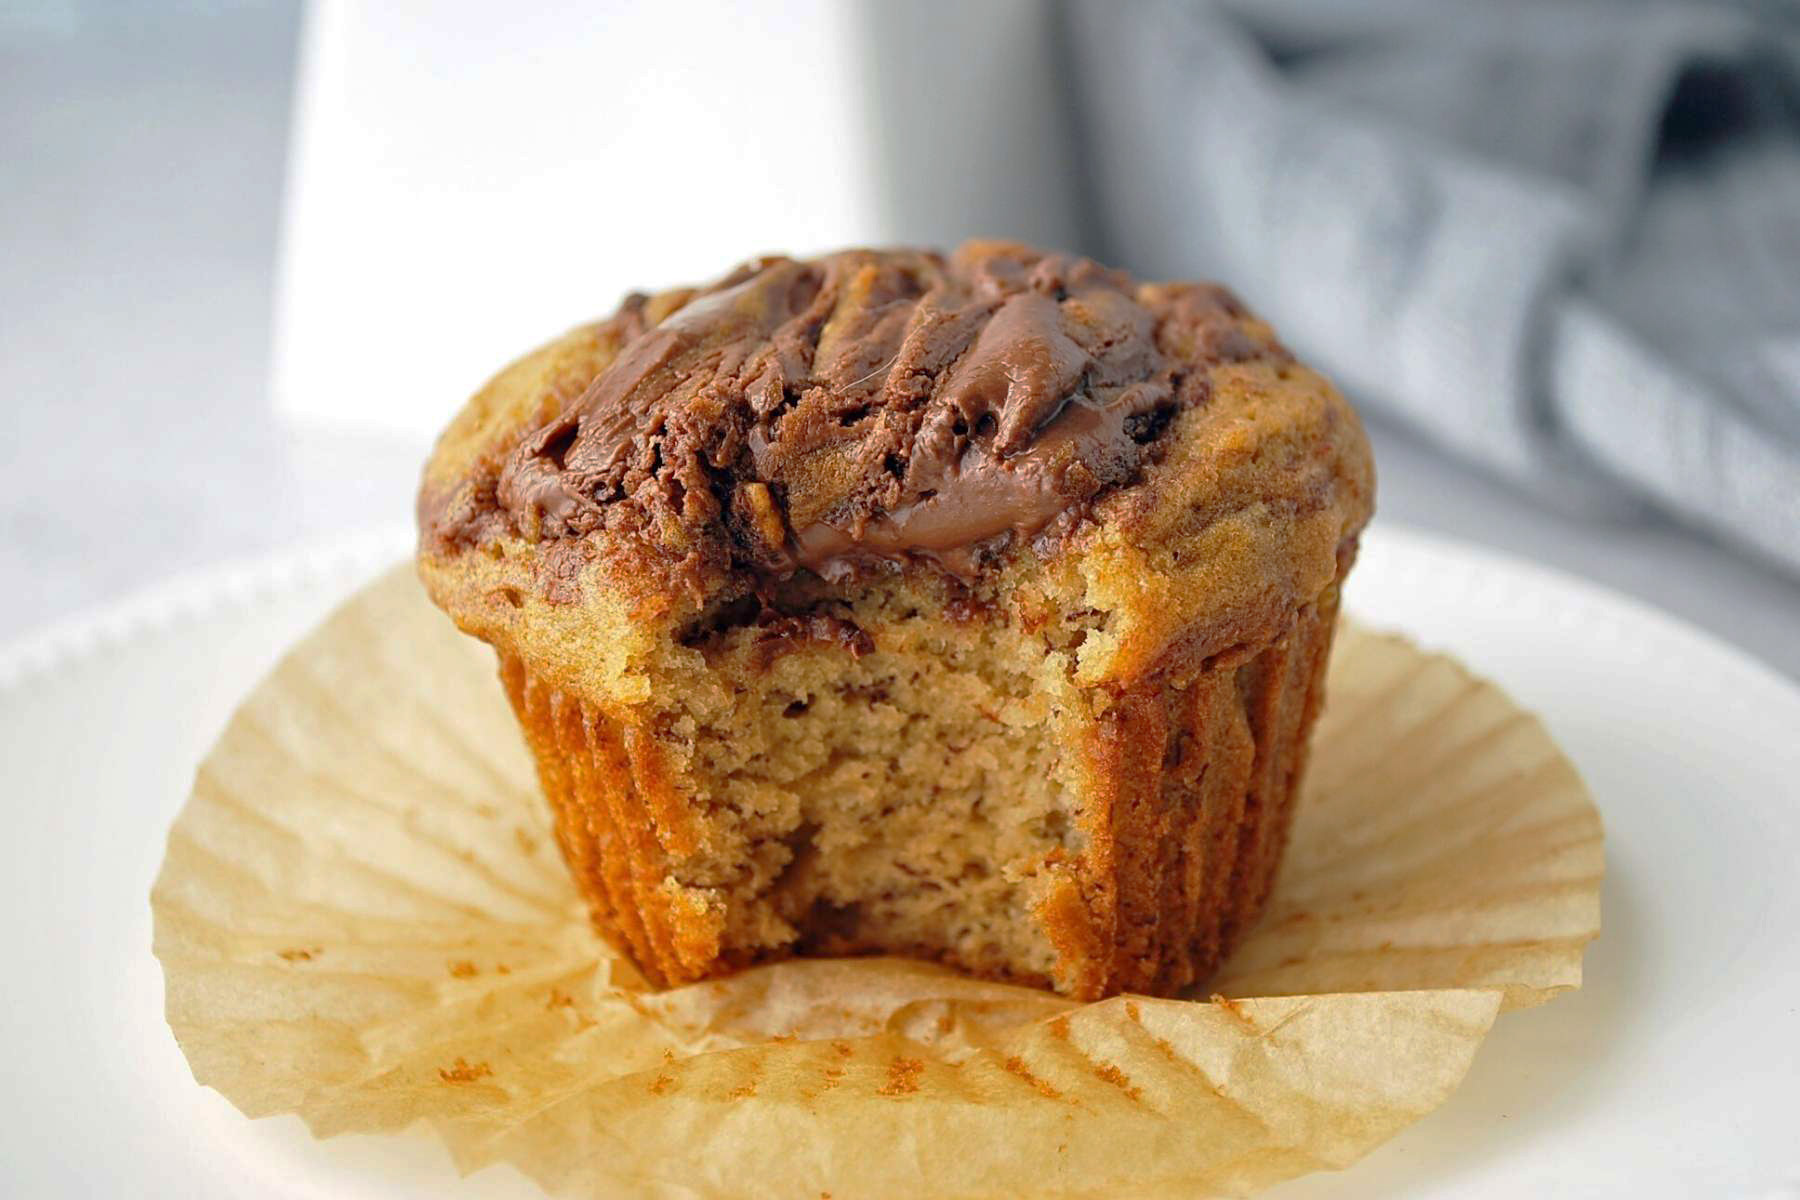 muffin with a bite taken out of it on a counter